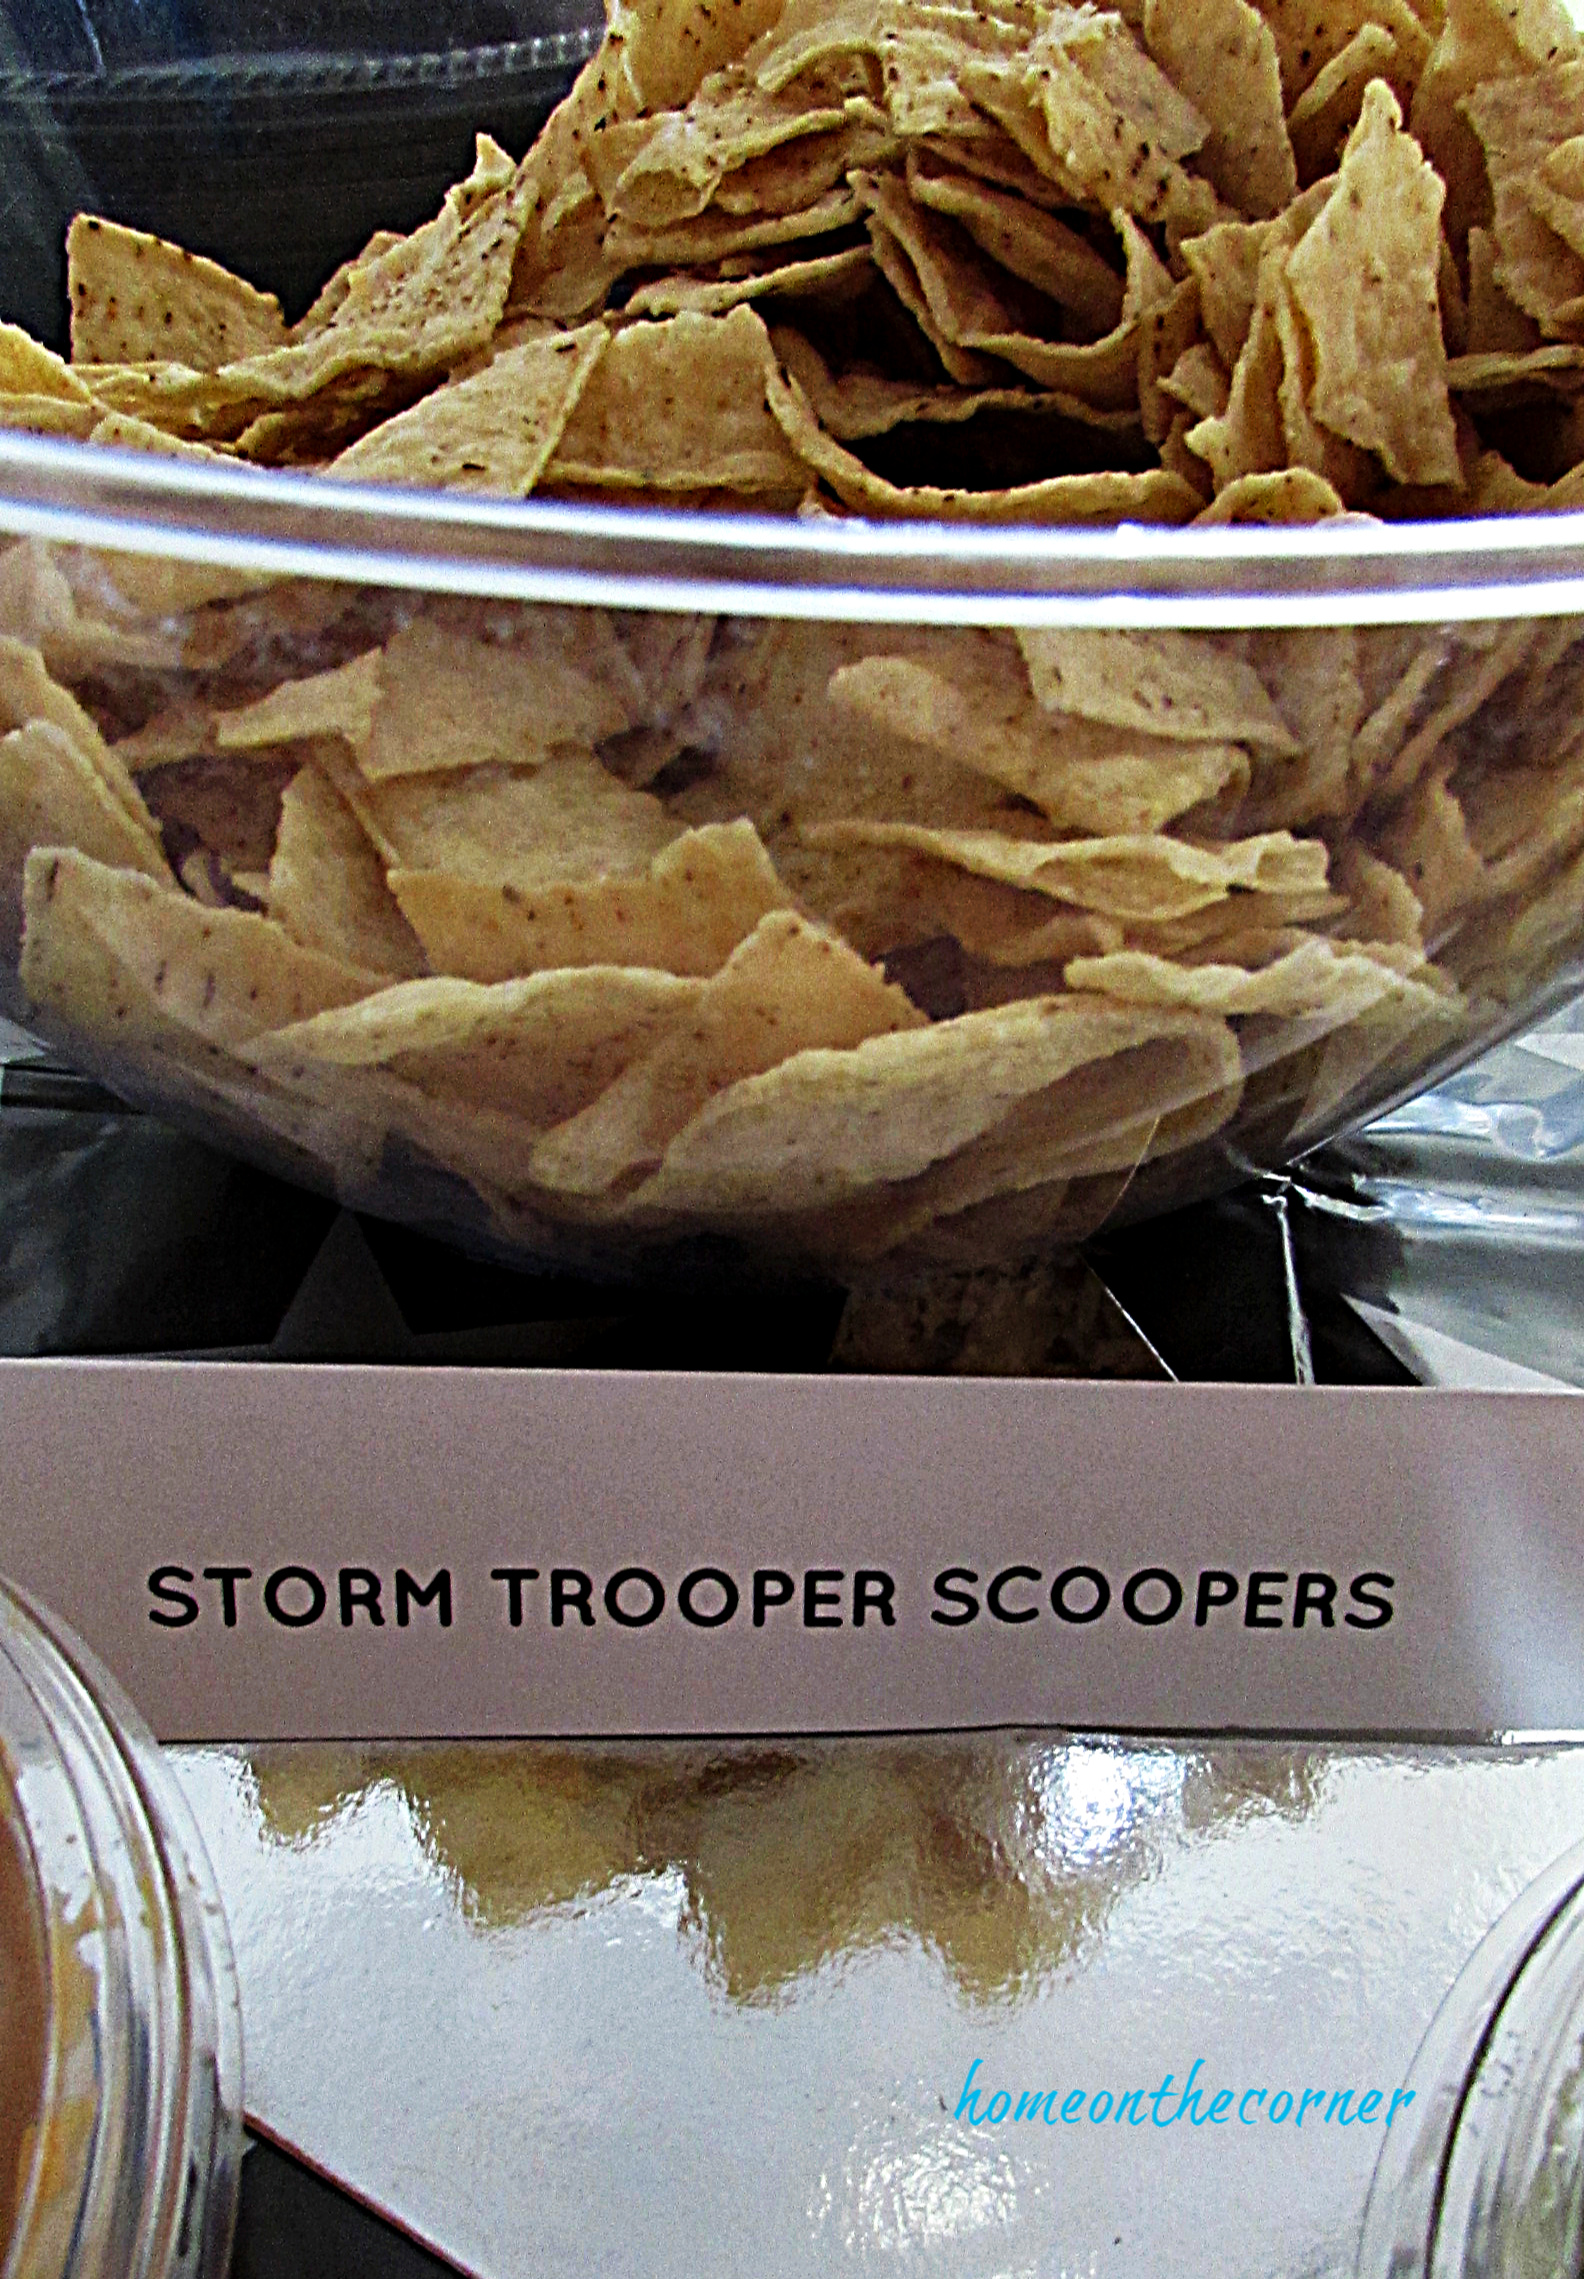 Disneyland Tomorrowland Storm Trooper Scoopers